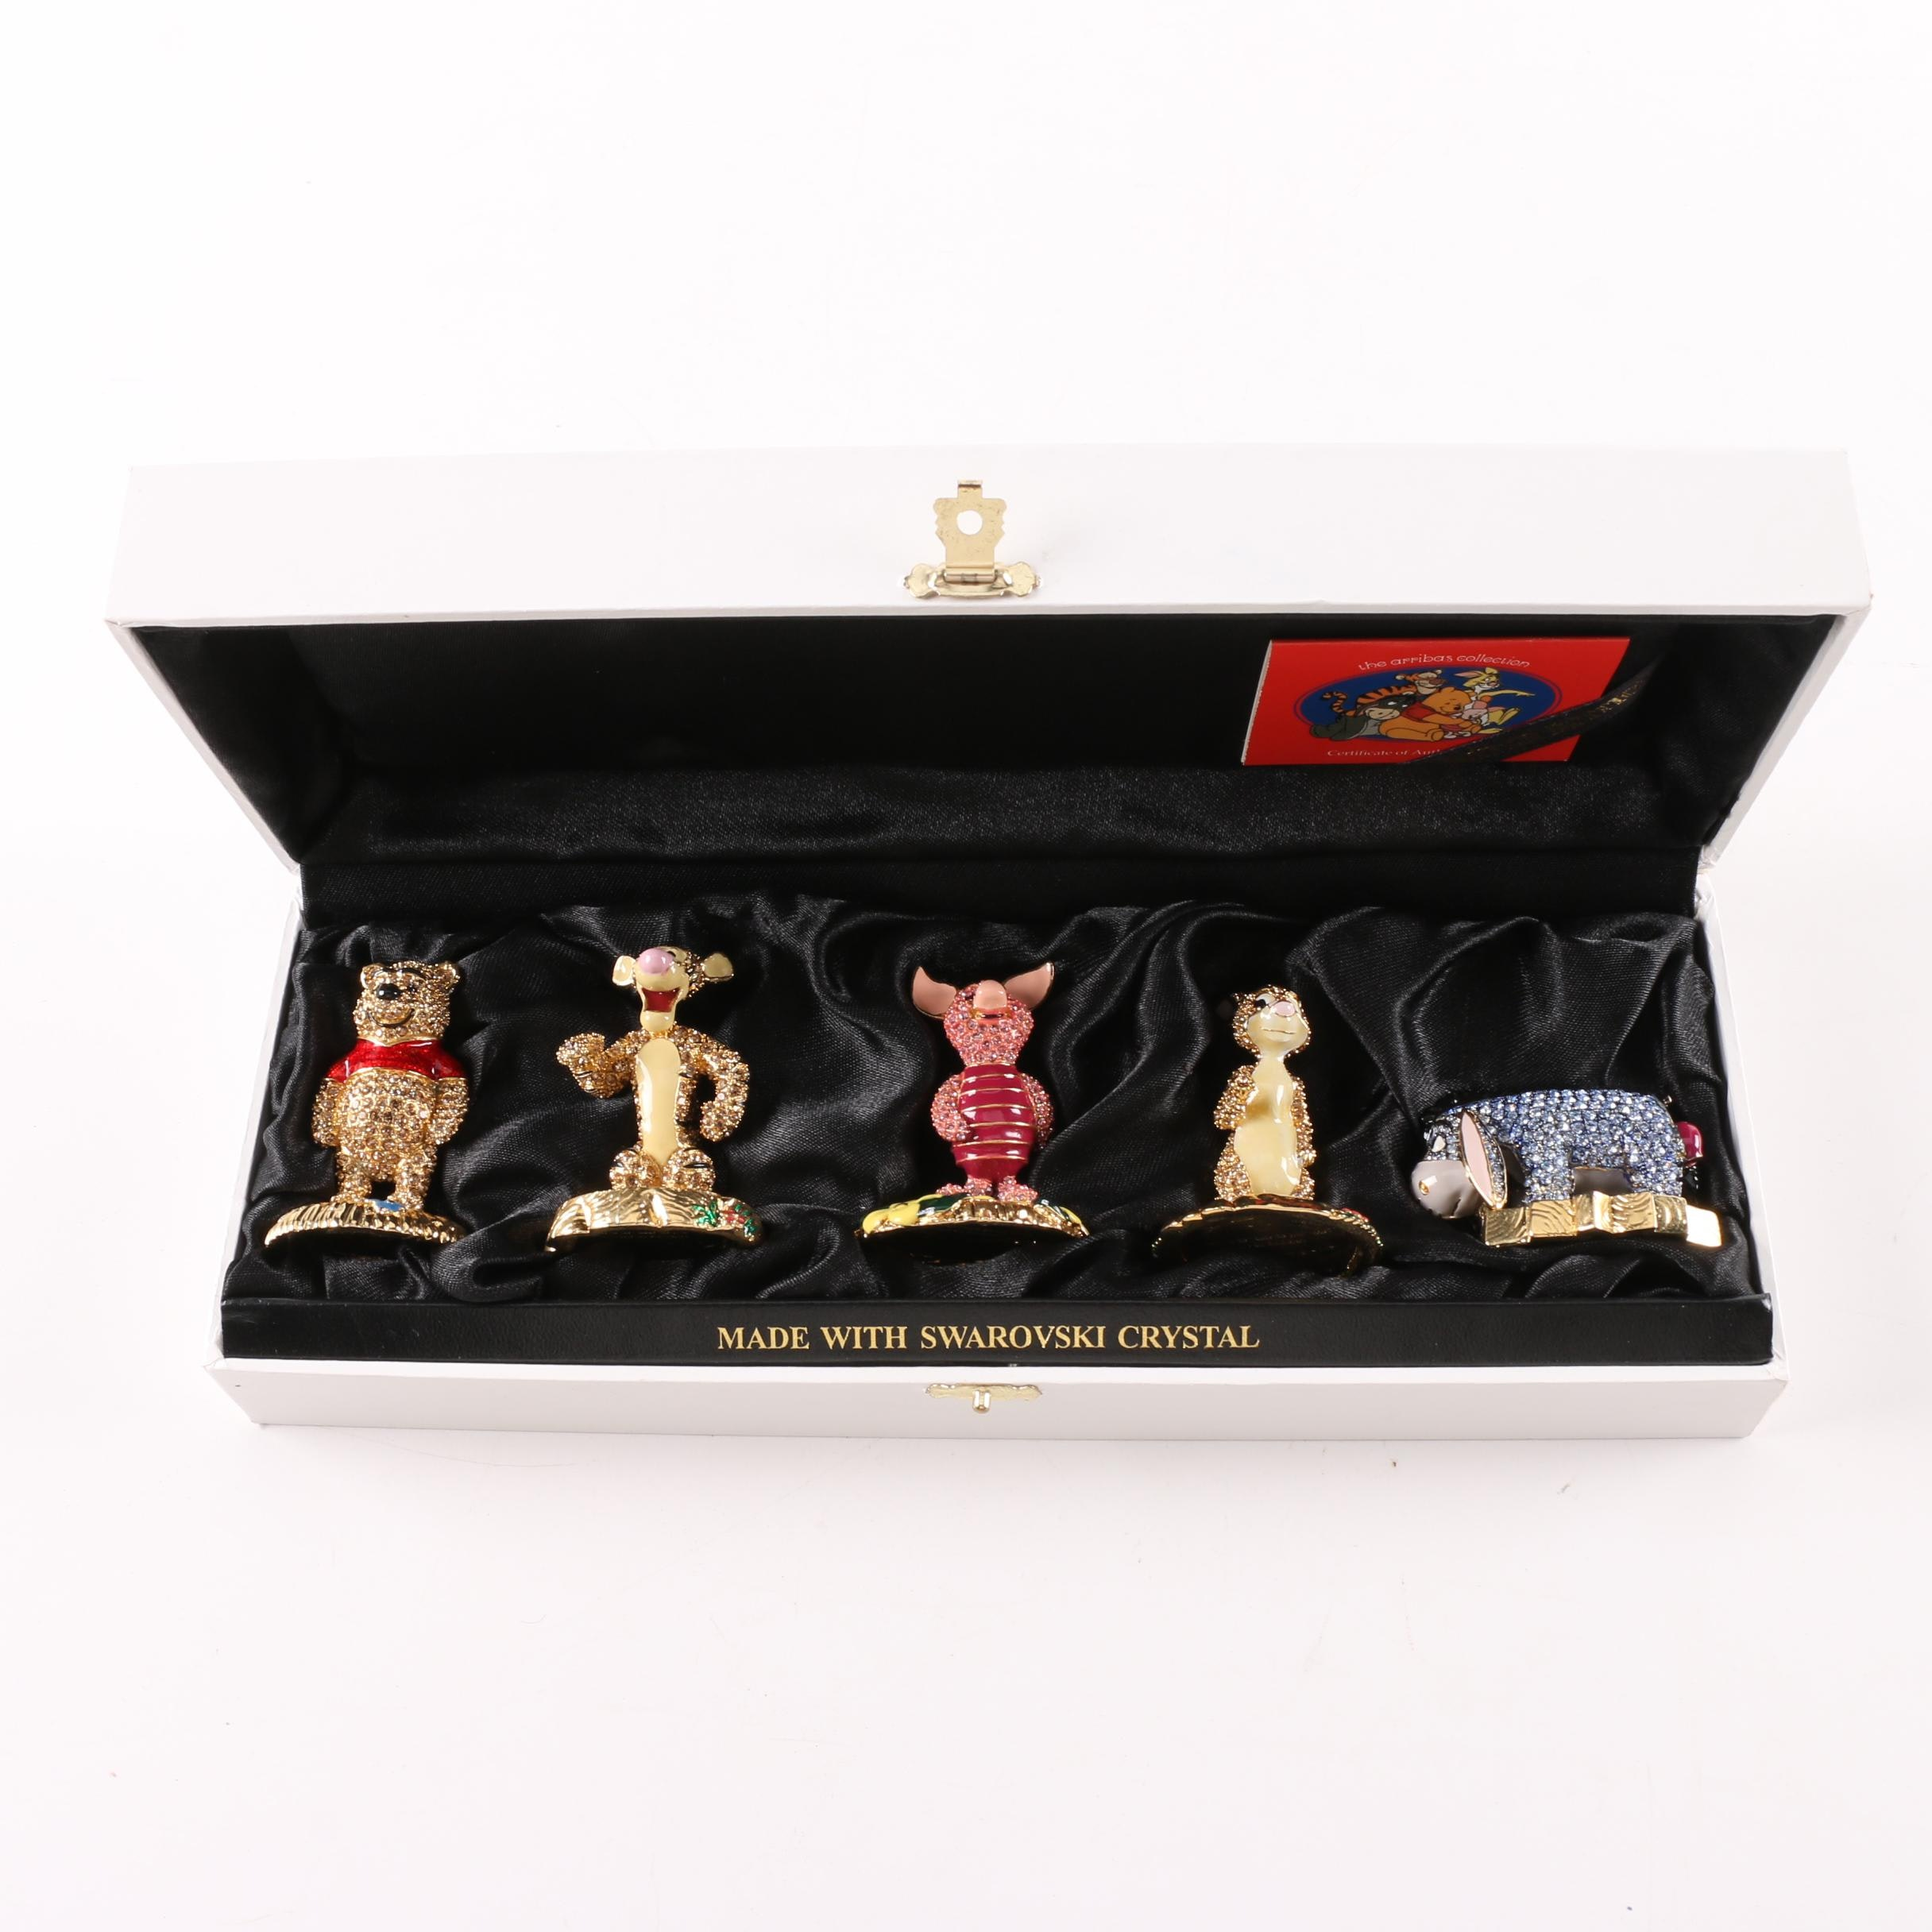 Limited Edition Arribas Brothers Swarovski Winnie the Pooh Figurine Set